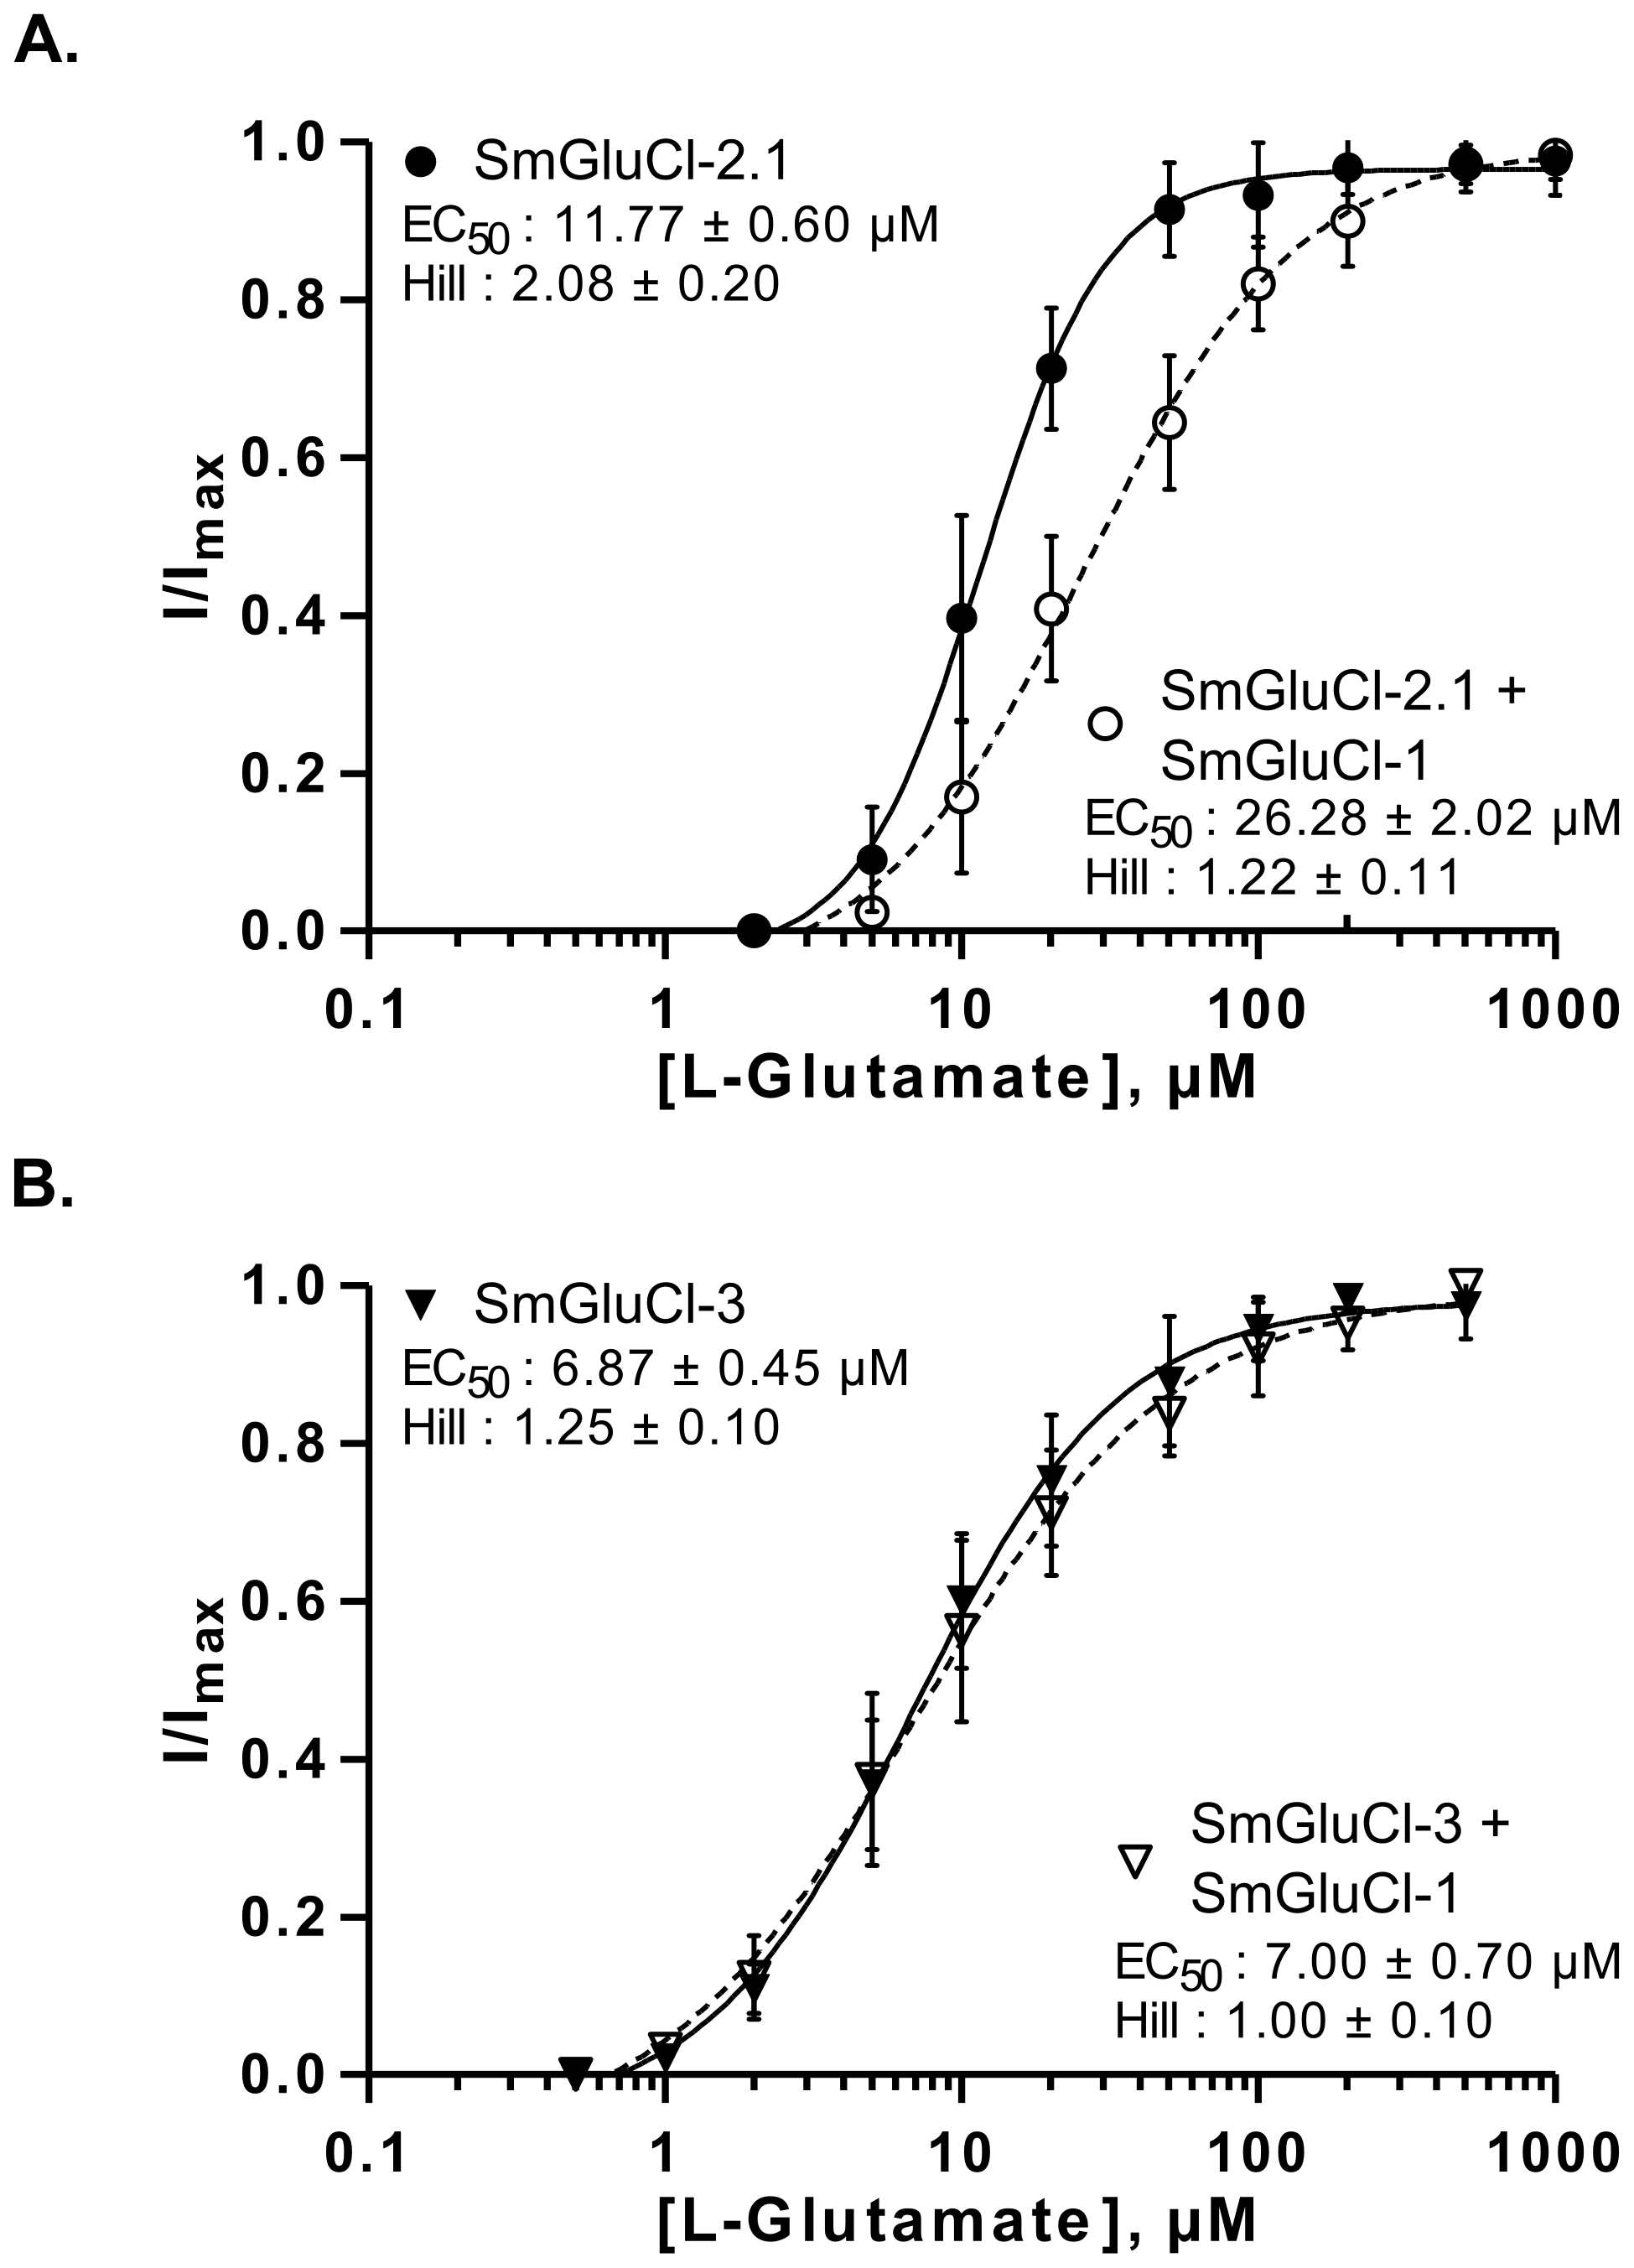 L-glutamate concentration-response relationships of SmGluCl-1:SmGluCl-2.1 and SmGluCl-1:SmGluCl-3 hetero-oligomers in <i>Xenopus</i> oocytes.